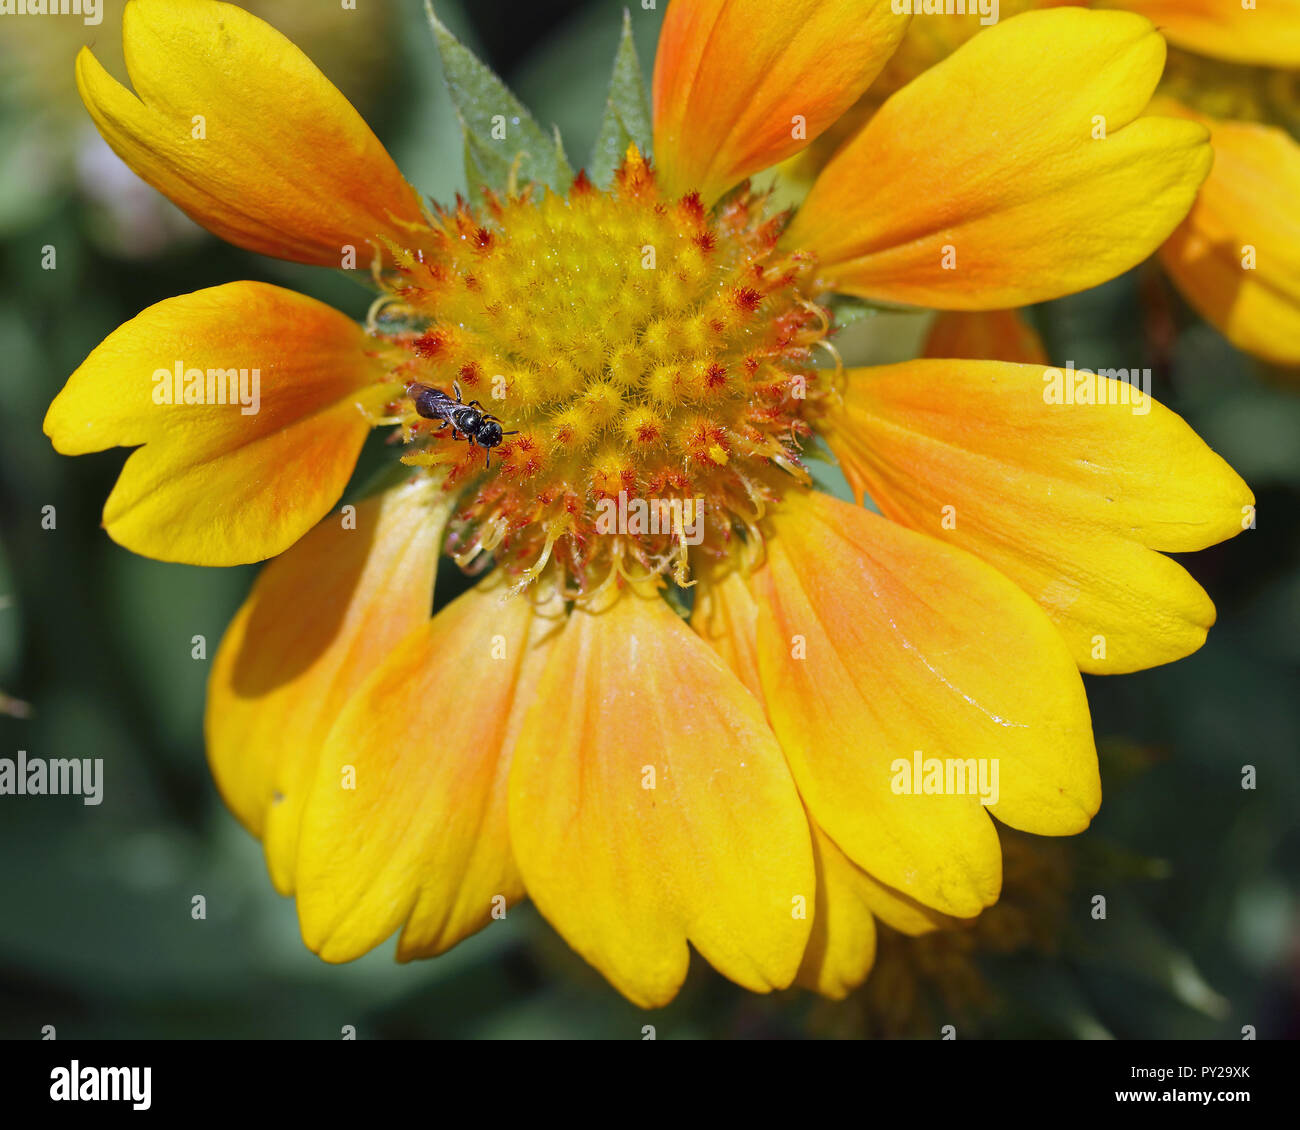 Orange fly on orange flower - Stock Image